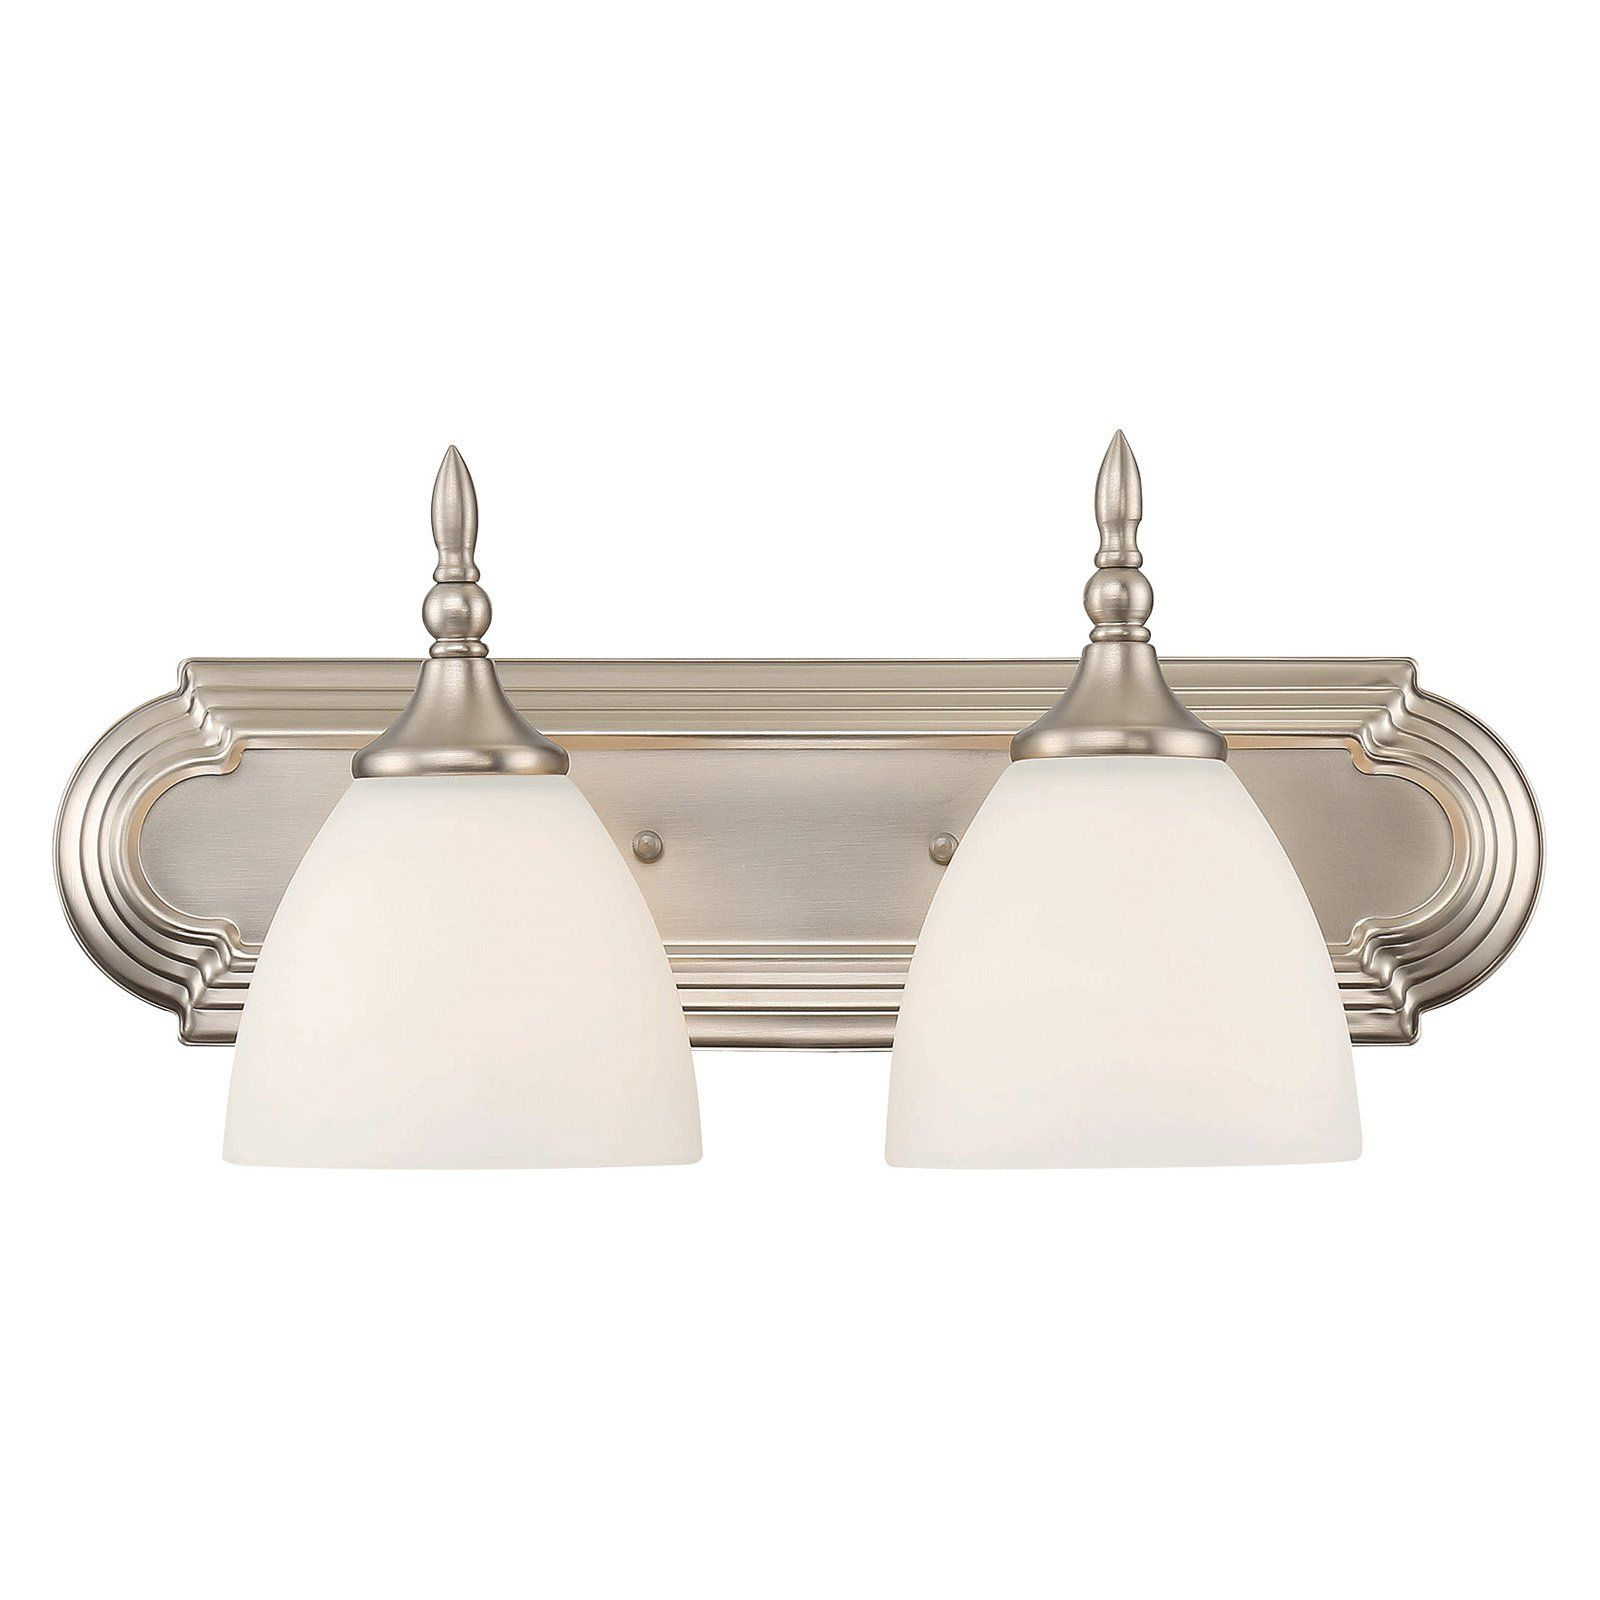 Photo of Savoy House Herndon 8-1007-2 Bathroom Vanity Light